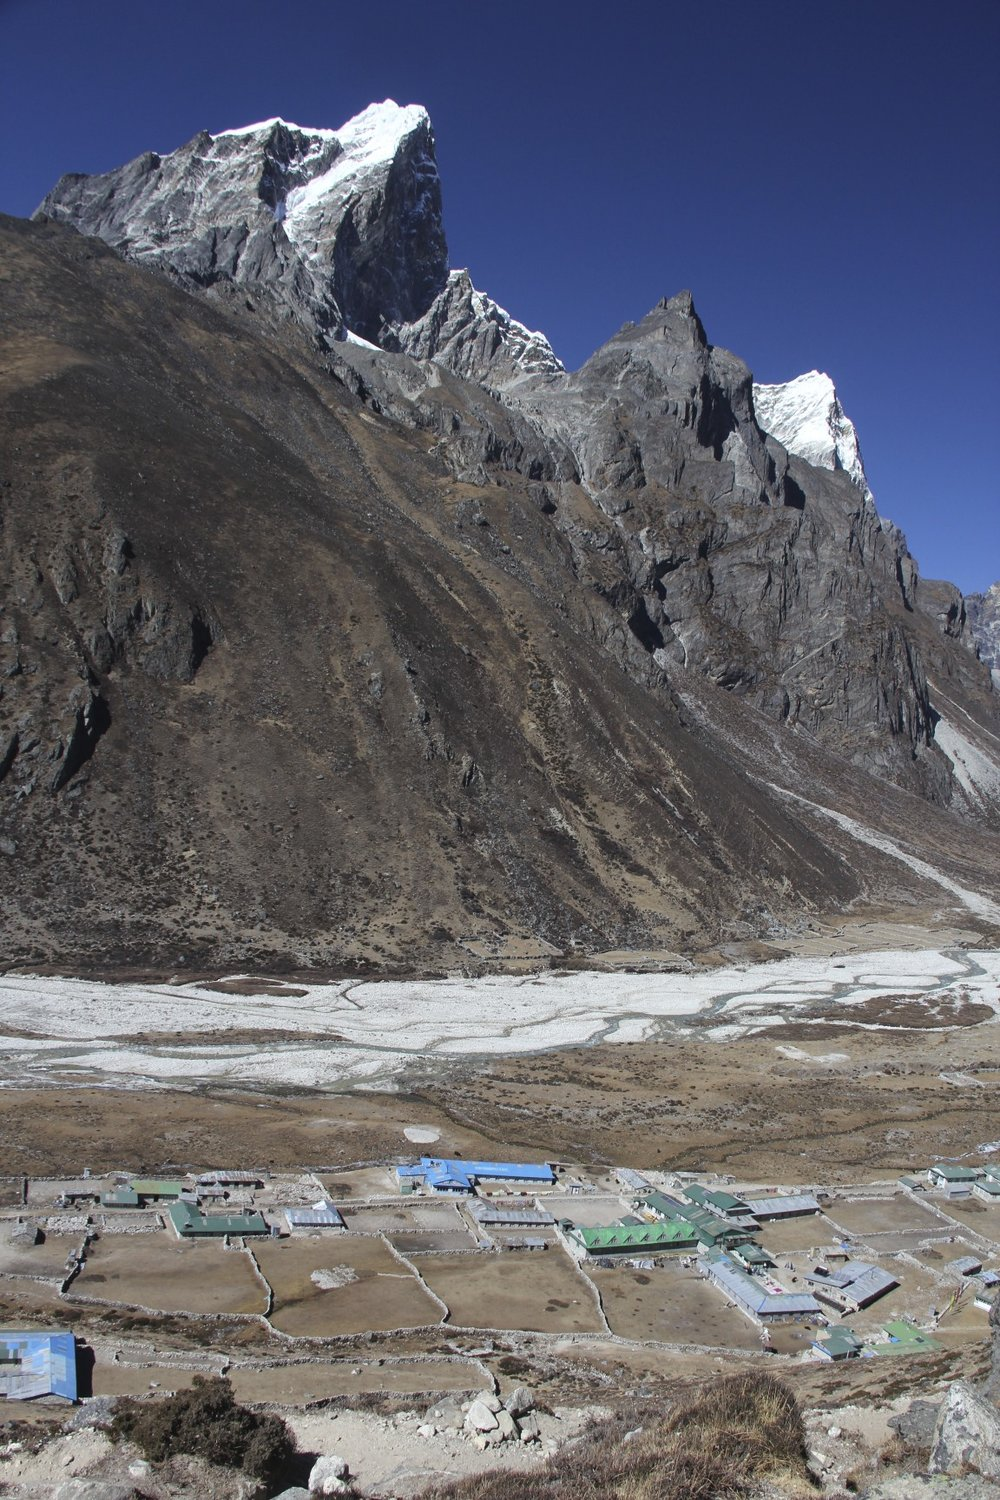 Pheriche village and Mt. Cholatse.